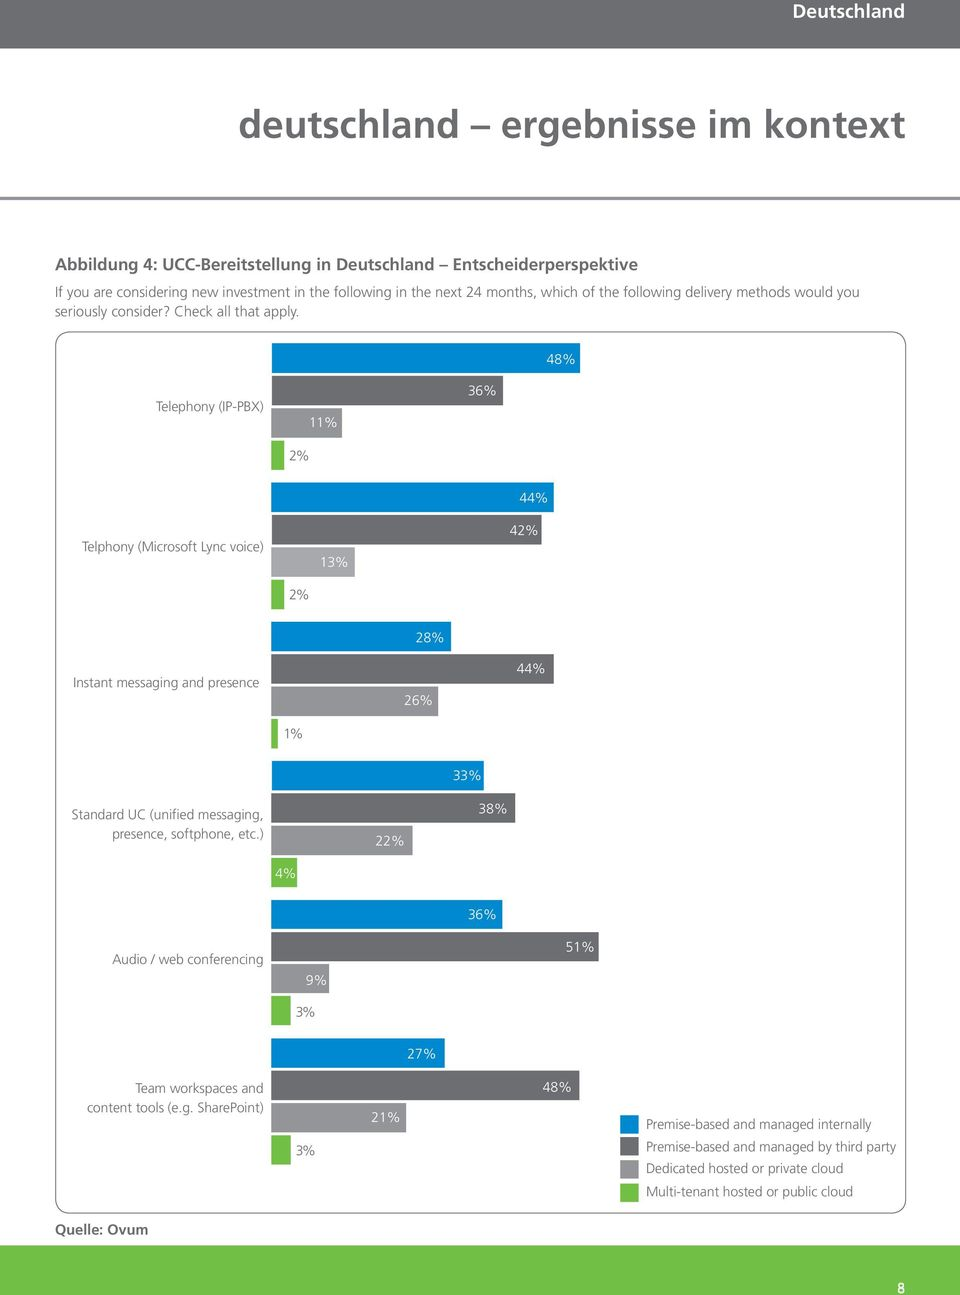 48% Telephony (IP-PBX) 2% 11% 36% Telphony (Microsoft Lync voice) 13% 44% 42% 2% Instant messaging and presence 28% 26% 44% 1% Standard UC (unified messaging, presence, softphone, etc.